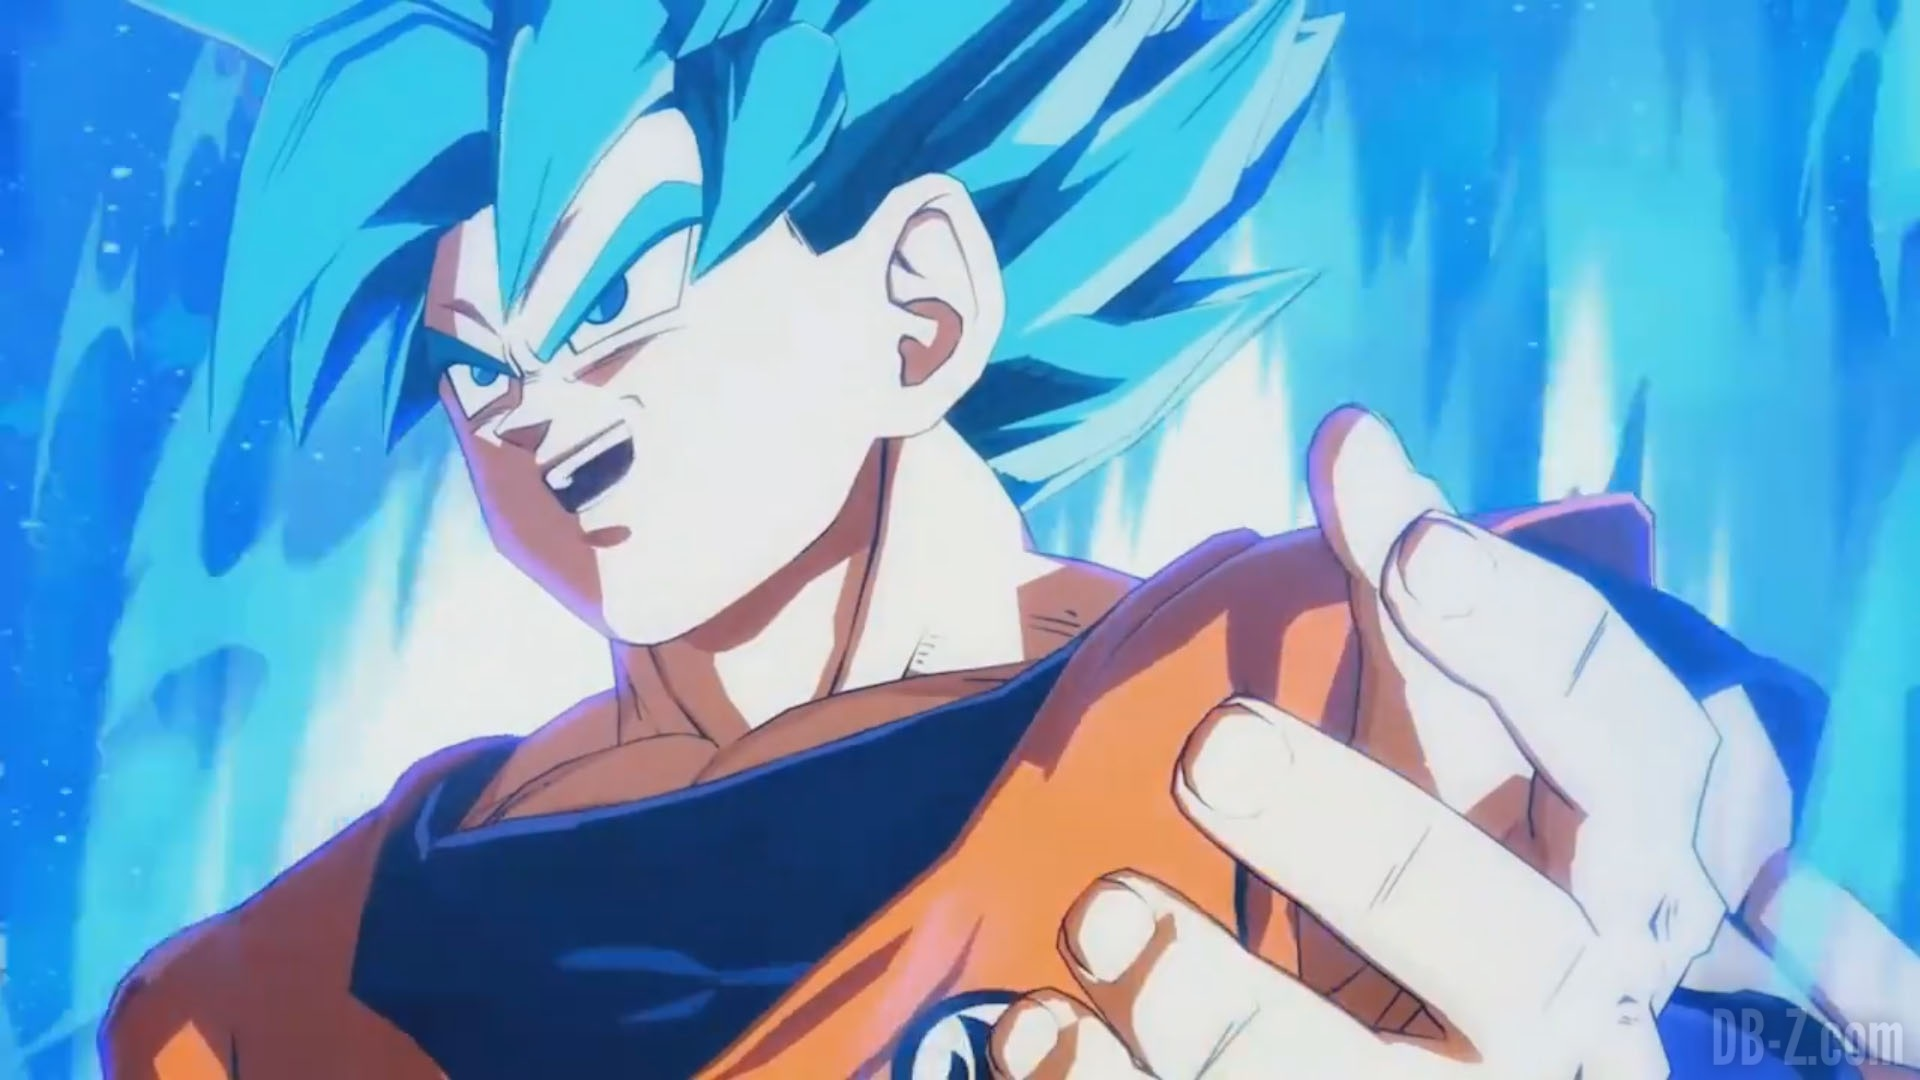 how to buy ssgss vegeta drsgon ball fighterz